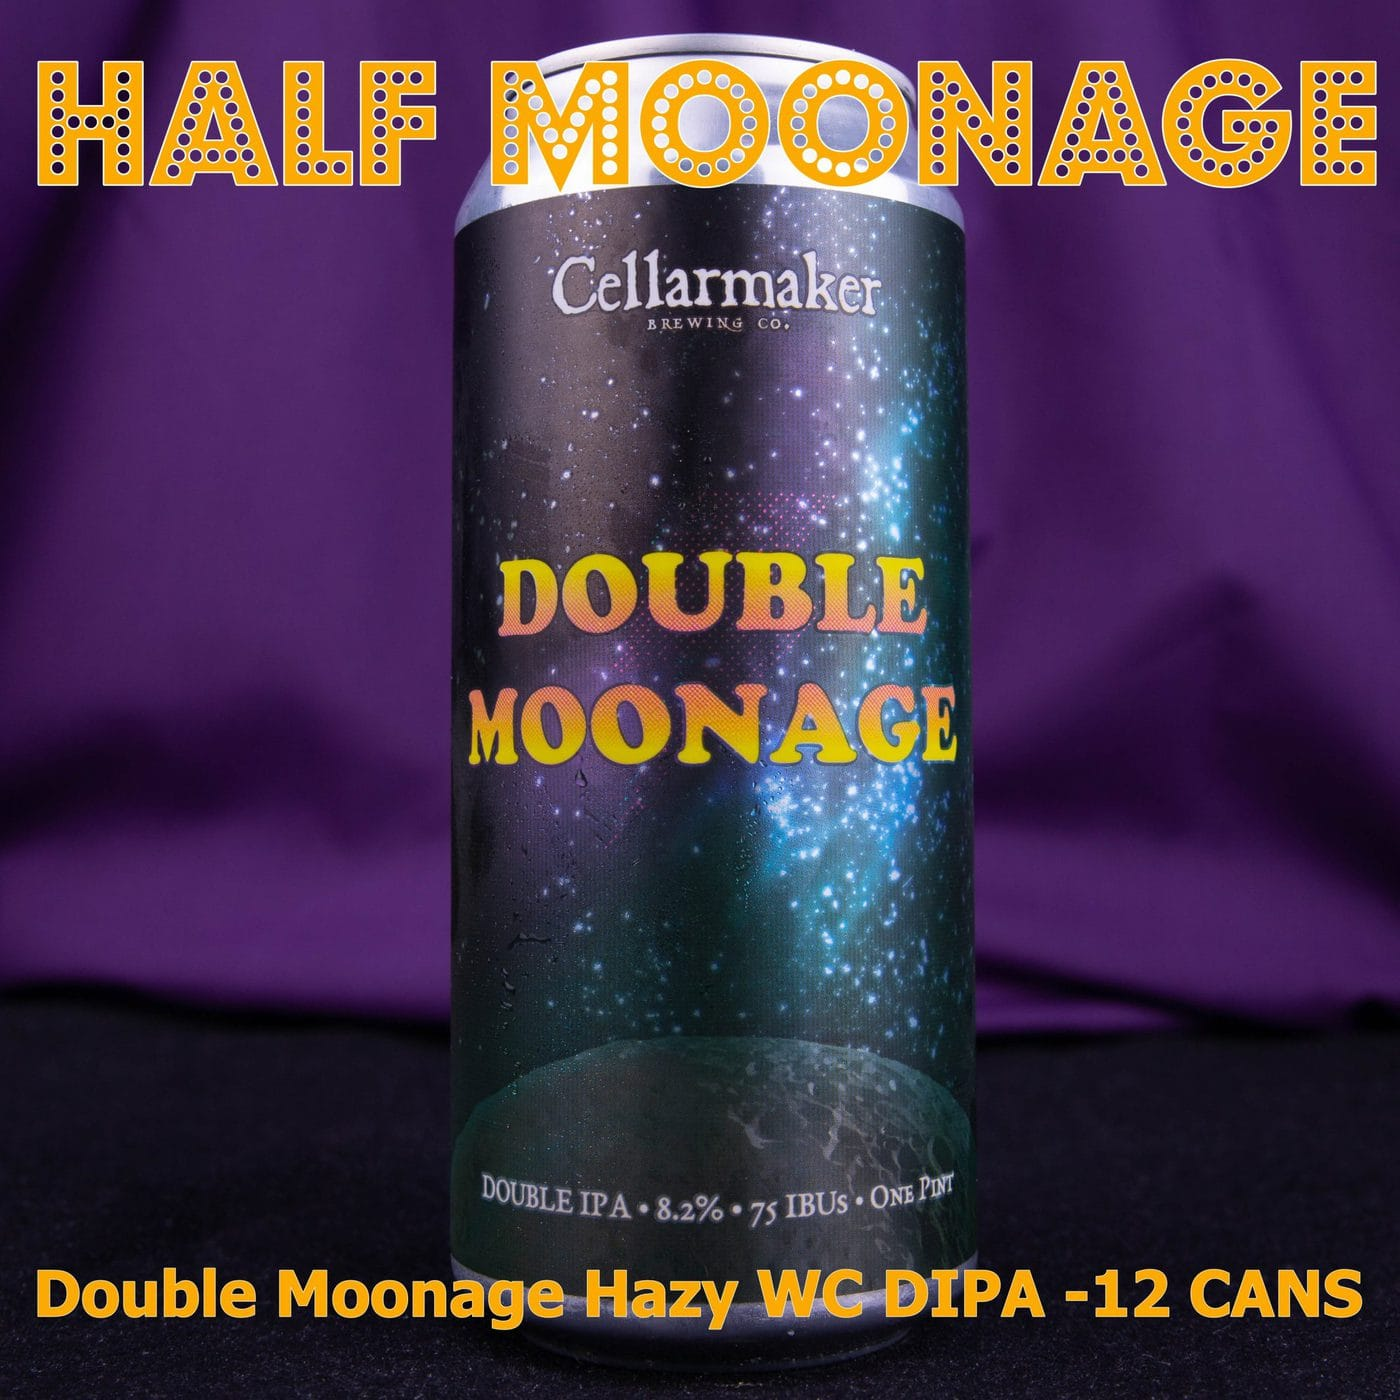 HALF CASE 12 CANS Double Moonage DIPA … SHIPPING Out On TUESDAY 1/12 For NEXT DAY Delivery*